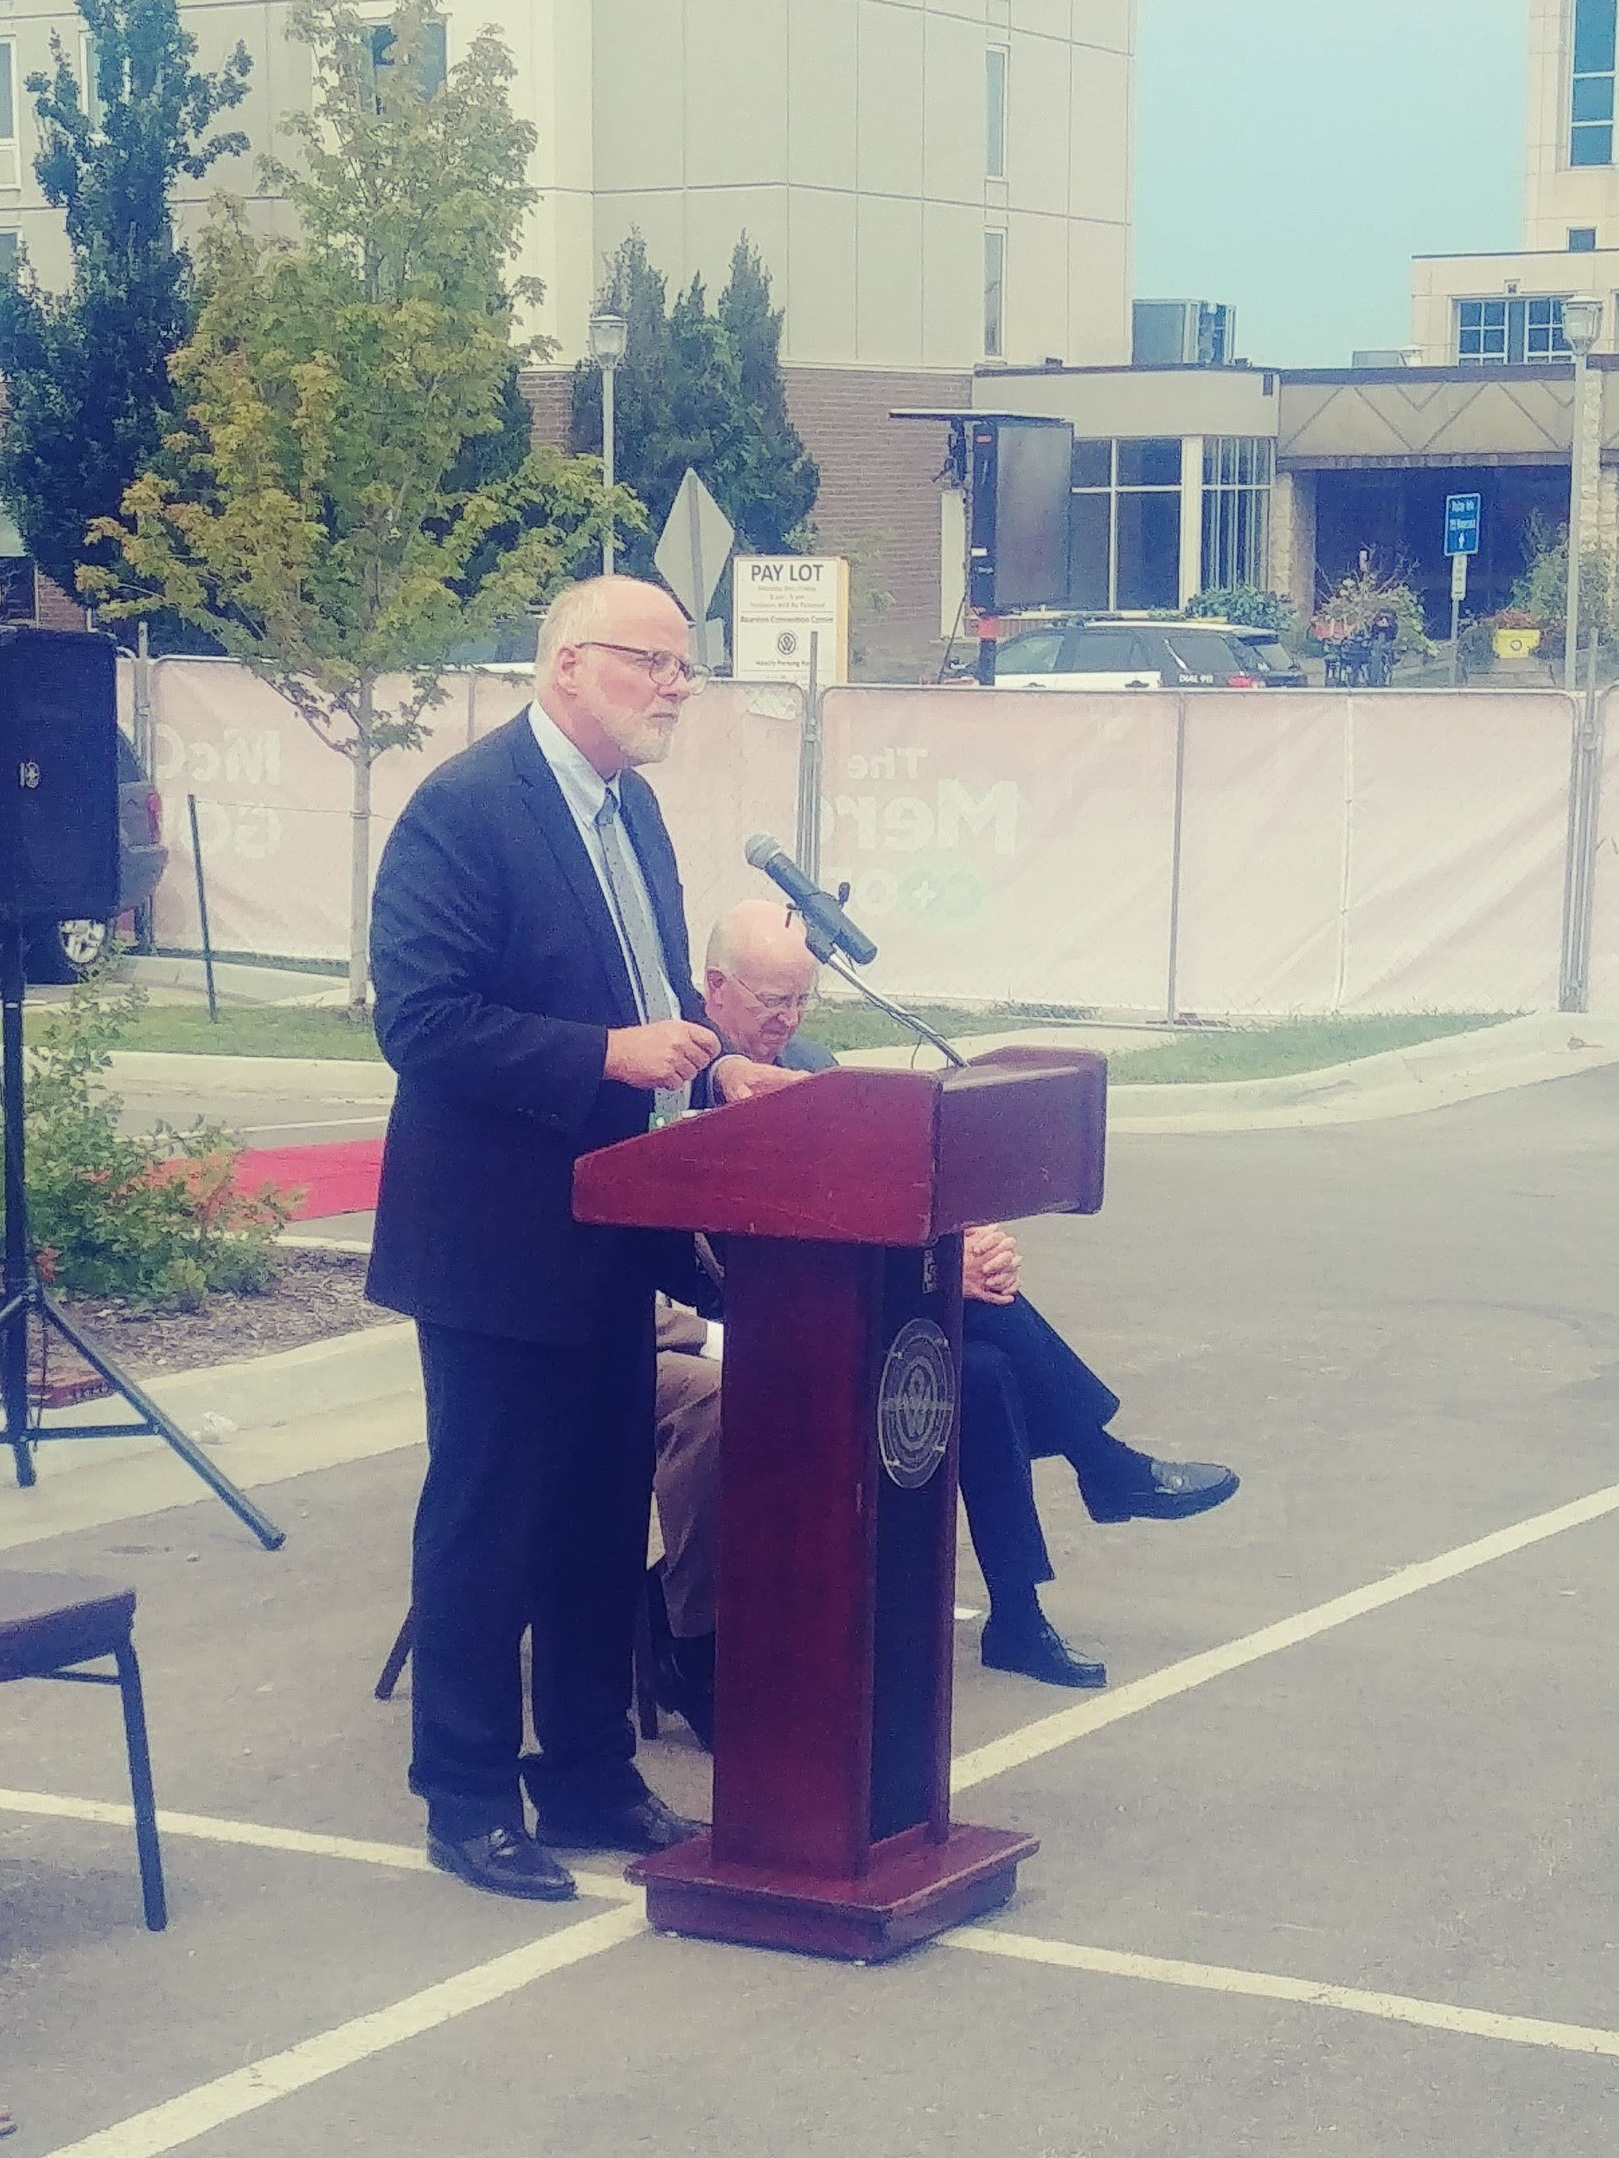 Mayor David Alvey speaks at the Downtown Grocery Store Groundbreaking, August 15, 2019